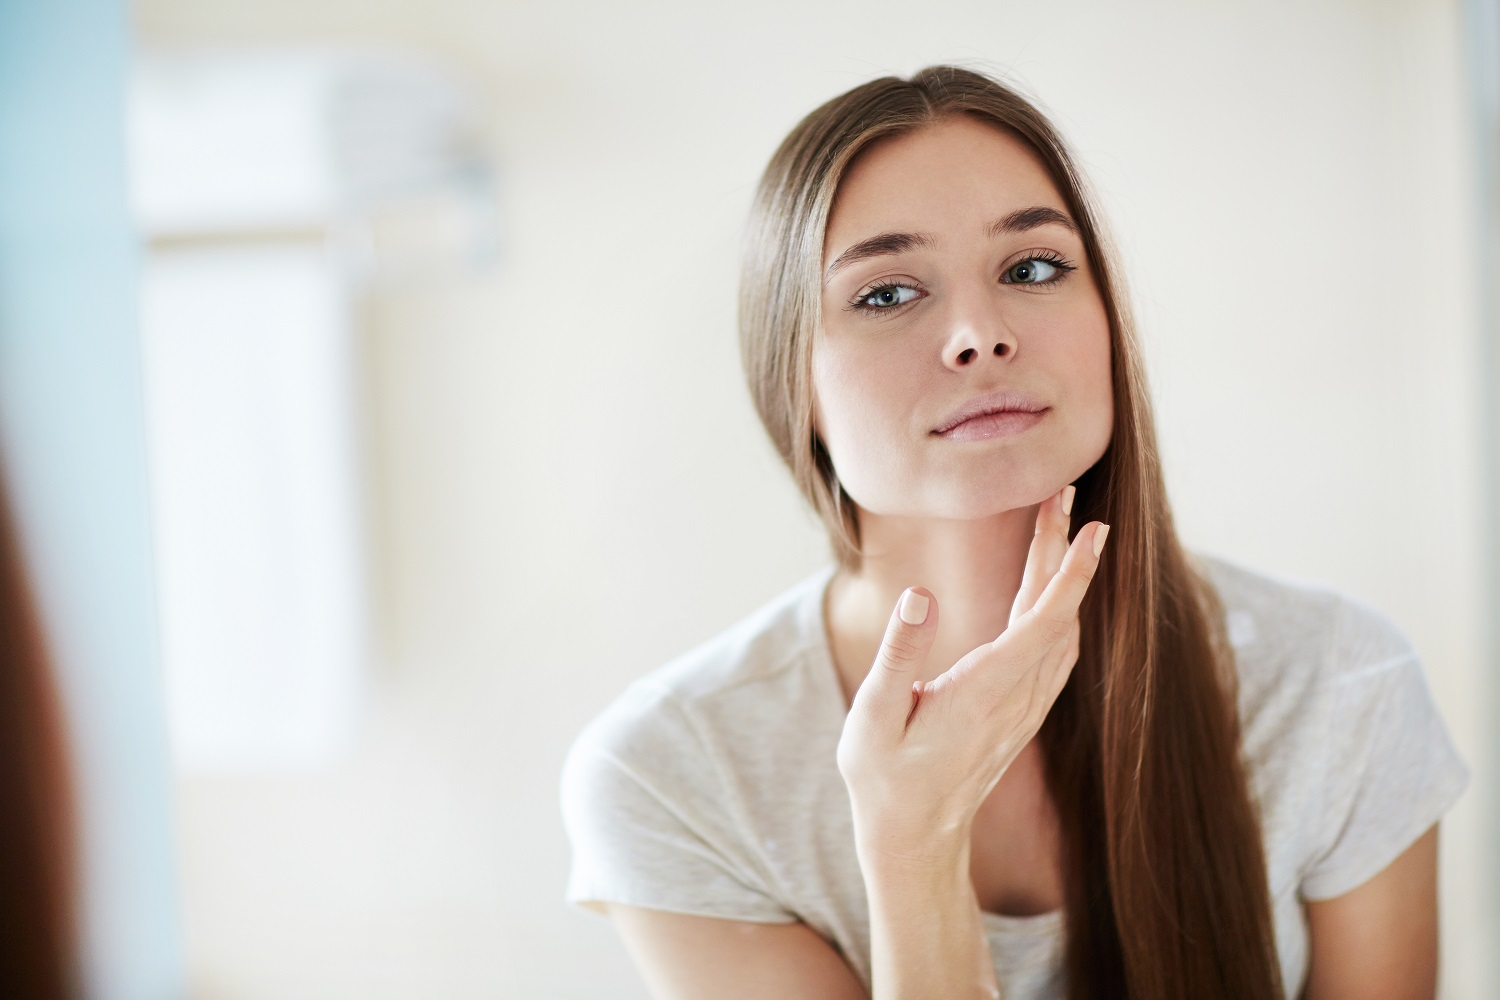 Acne doesn't have to rule your life